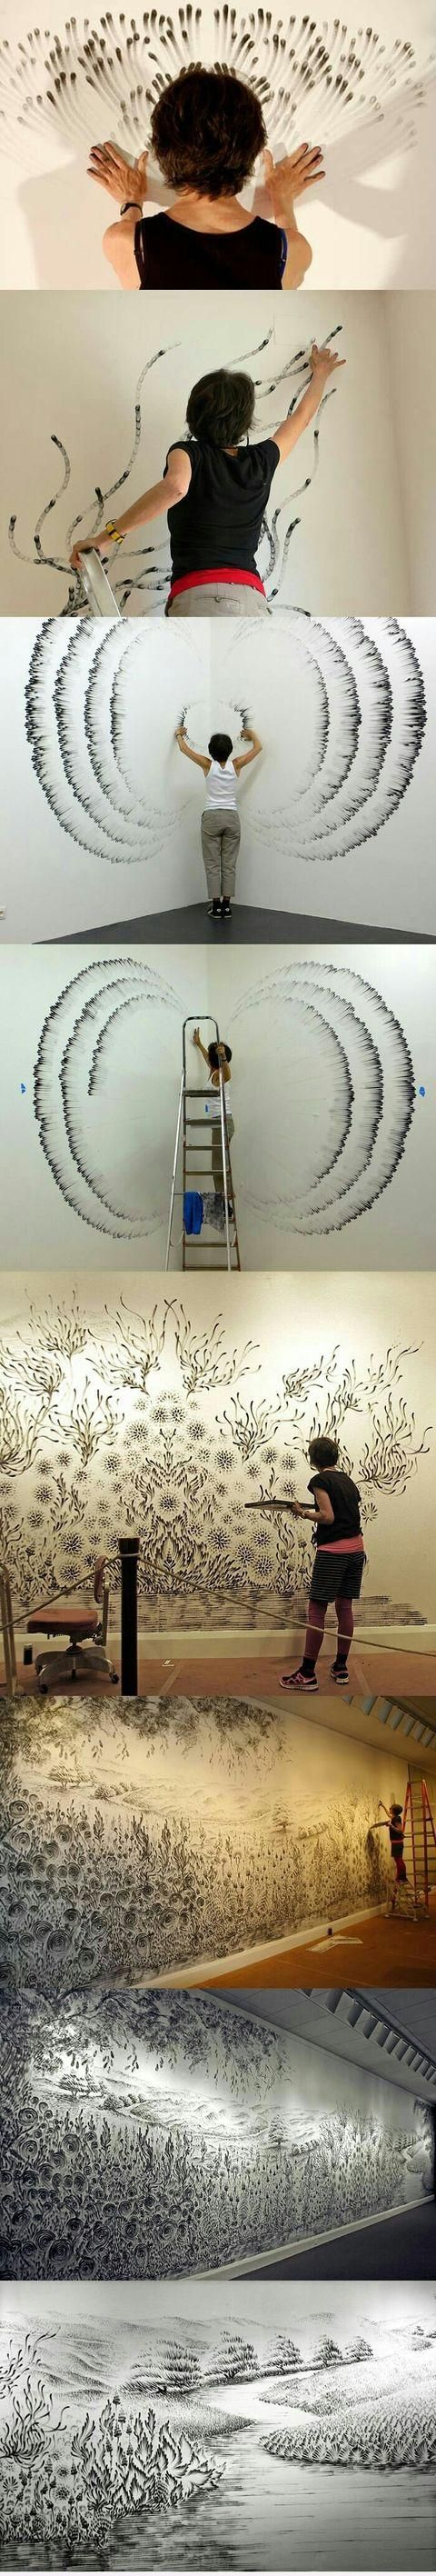 Taking finger painting to a whole new level. Judith Ann Braun | I waste So Much Time